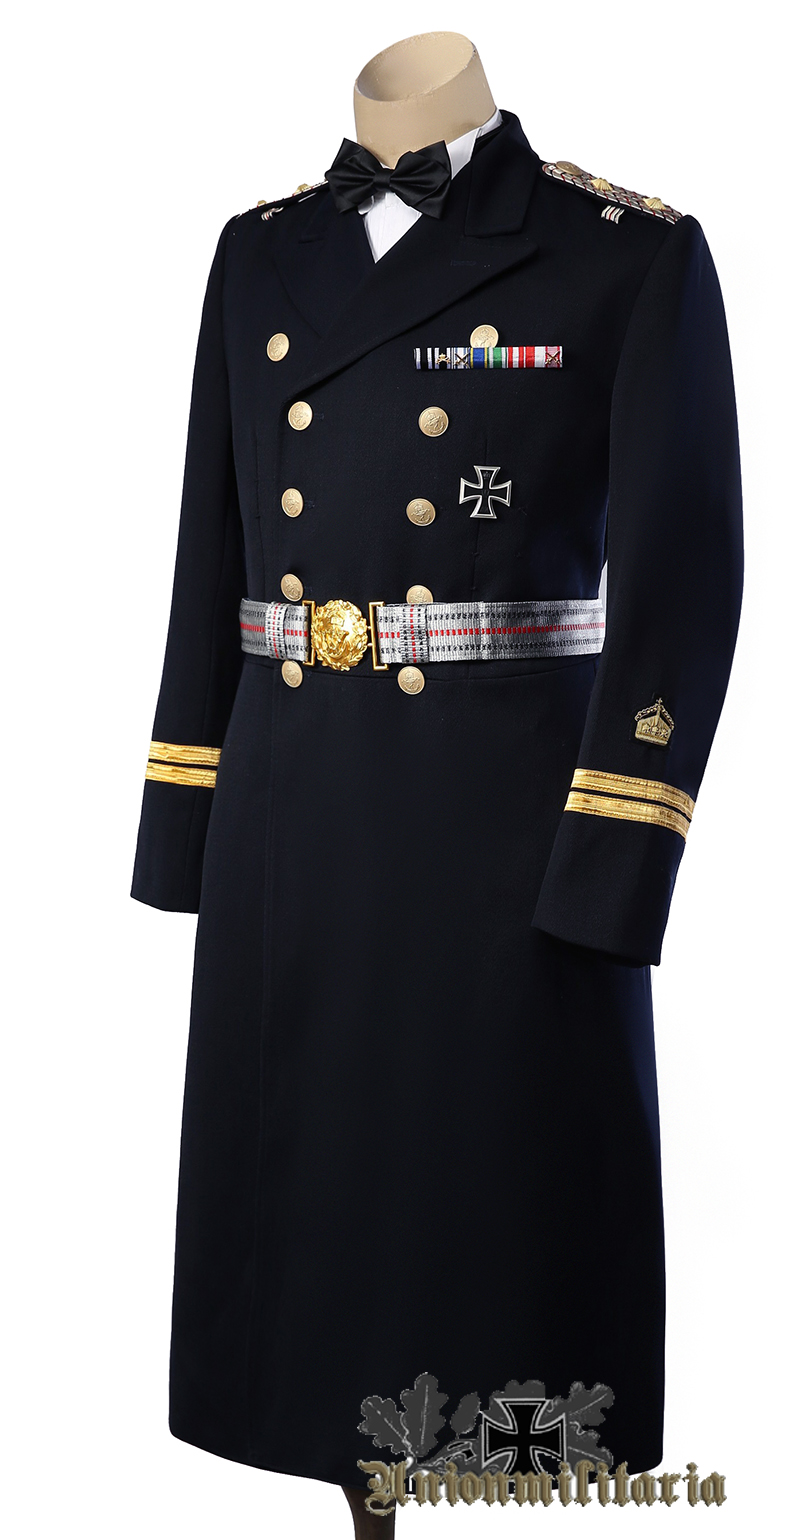 High Quality Ww1 German Naval Officer Frock Coat For Sale